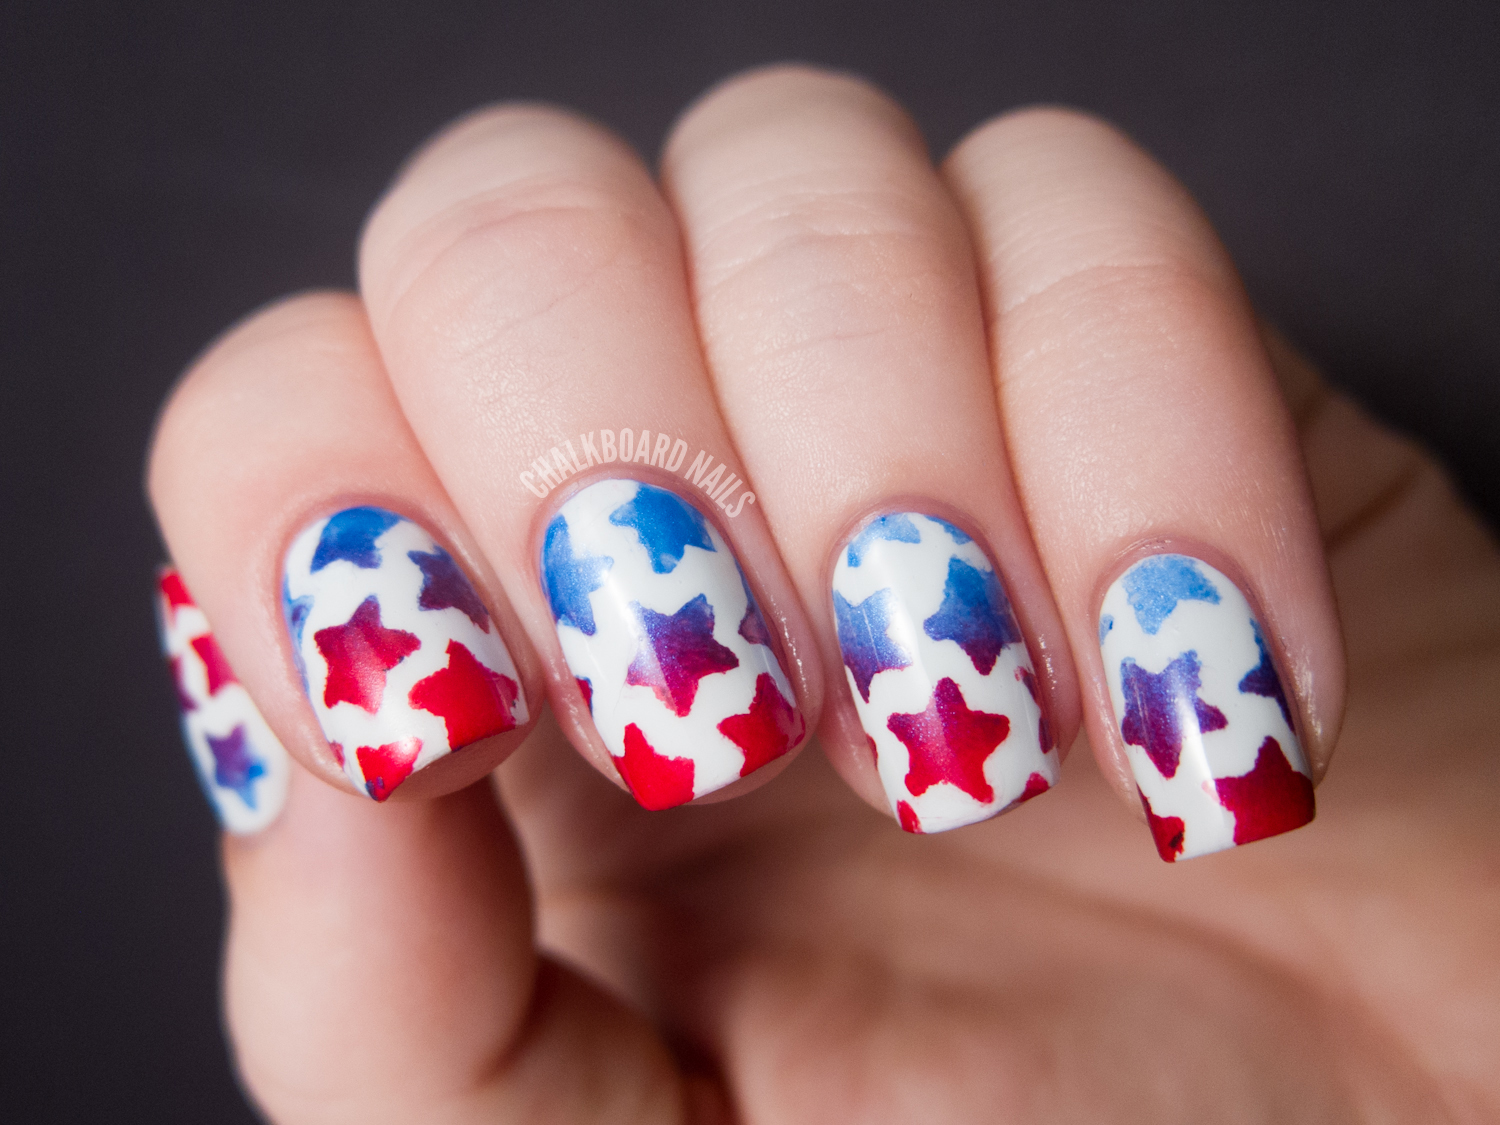 Stenciled Star Nails (+ Tutorial) - Stenciled Star Nails (+ Tutorial) Chalkboard Nails Nail Art Blog